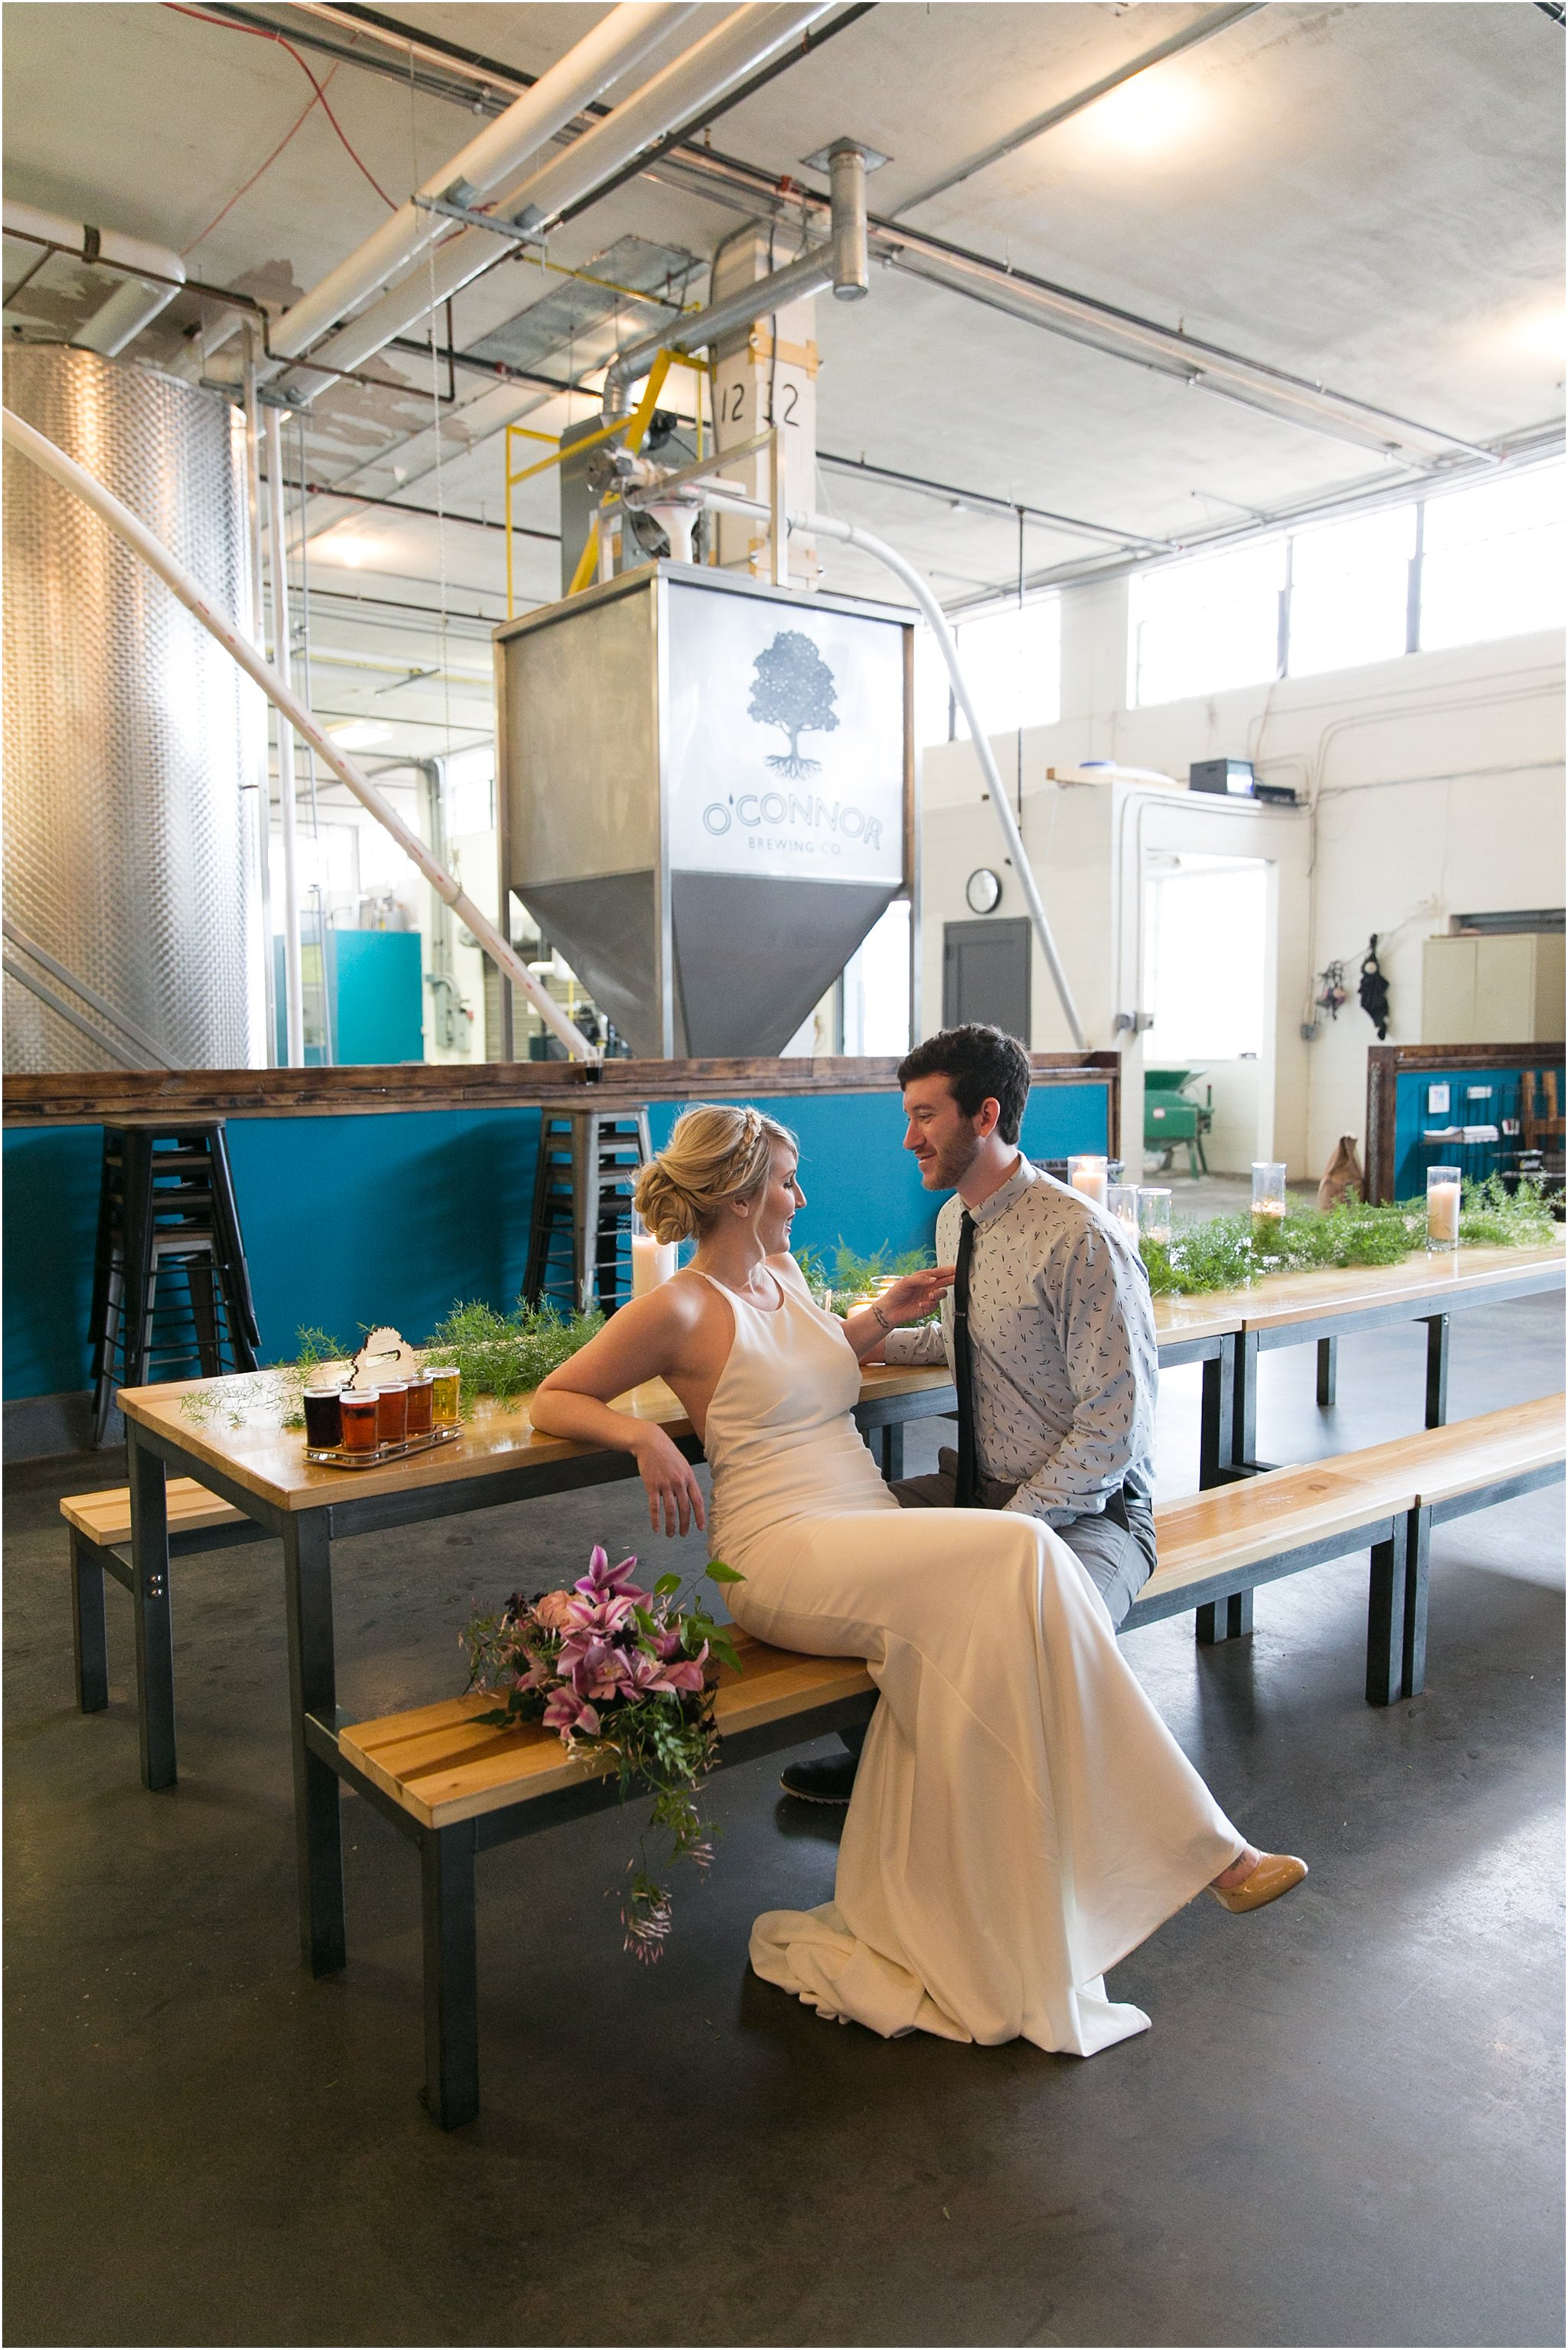 jessica_ryan_photography_oconnor_brewing_wedding_oconnor_brewing_co_norfolk_virginia_roost_flowers_blue_birds_garage__0830